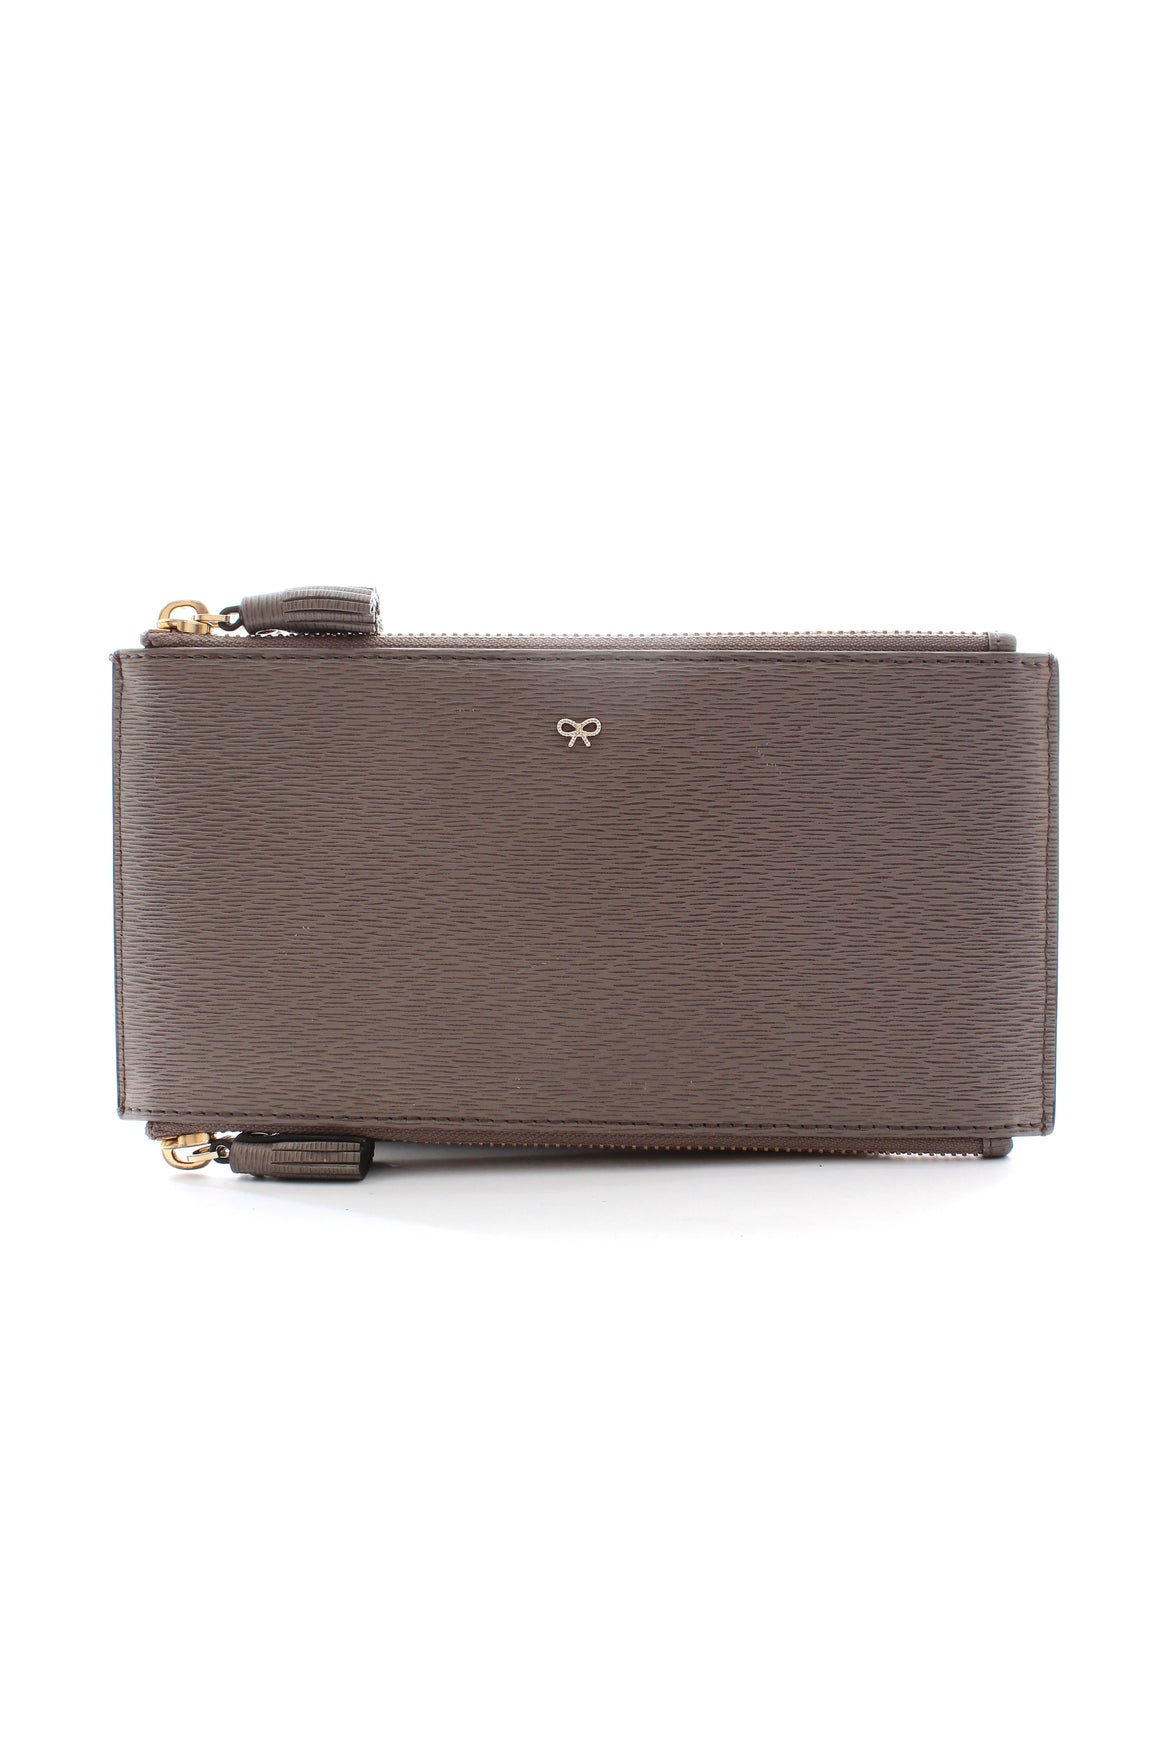 Anya Hindmarch Double Zip Leather Pouch